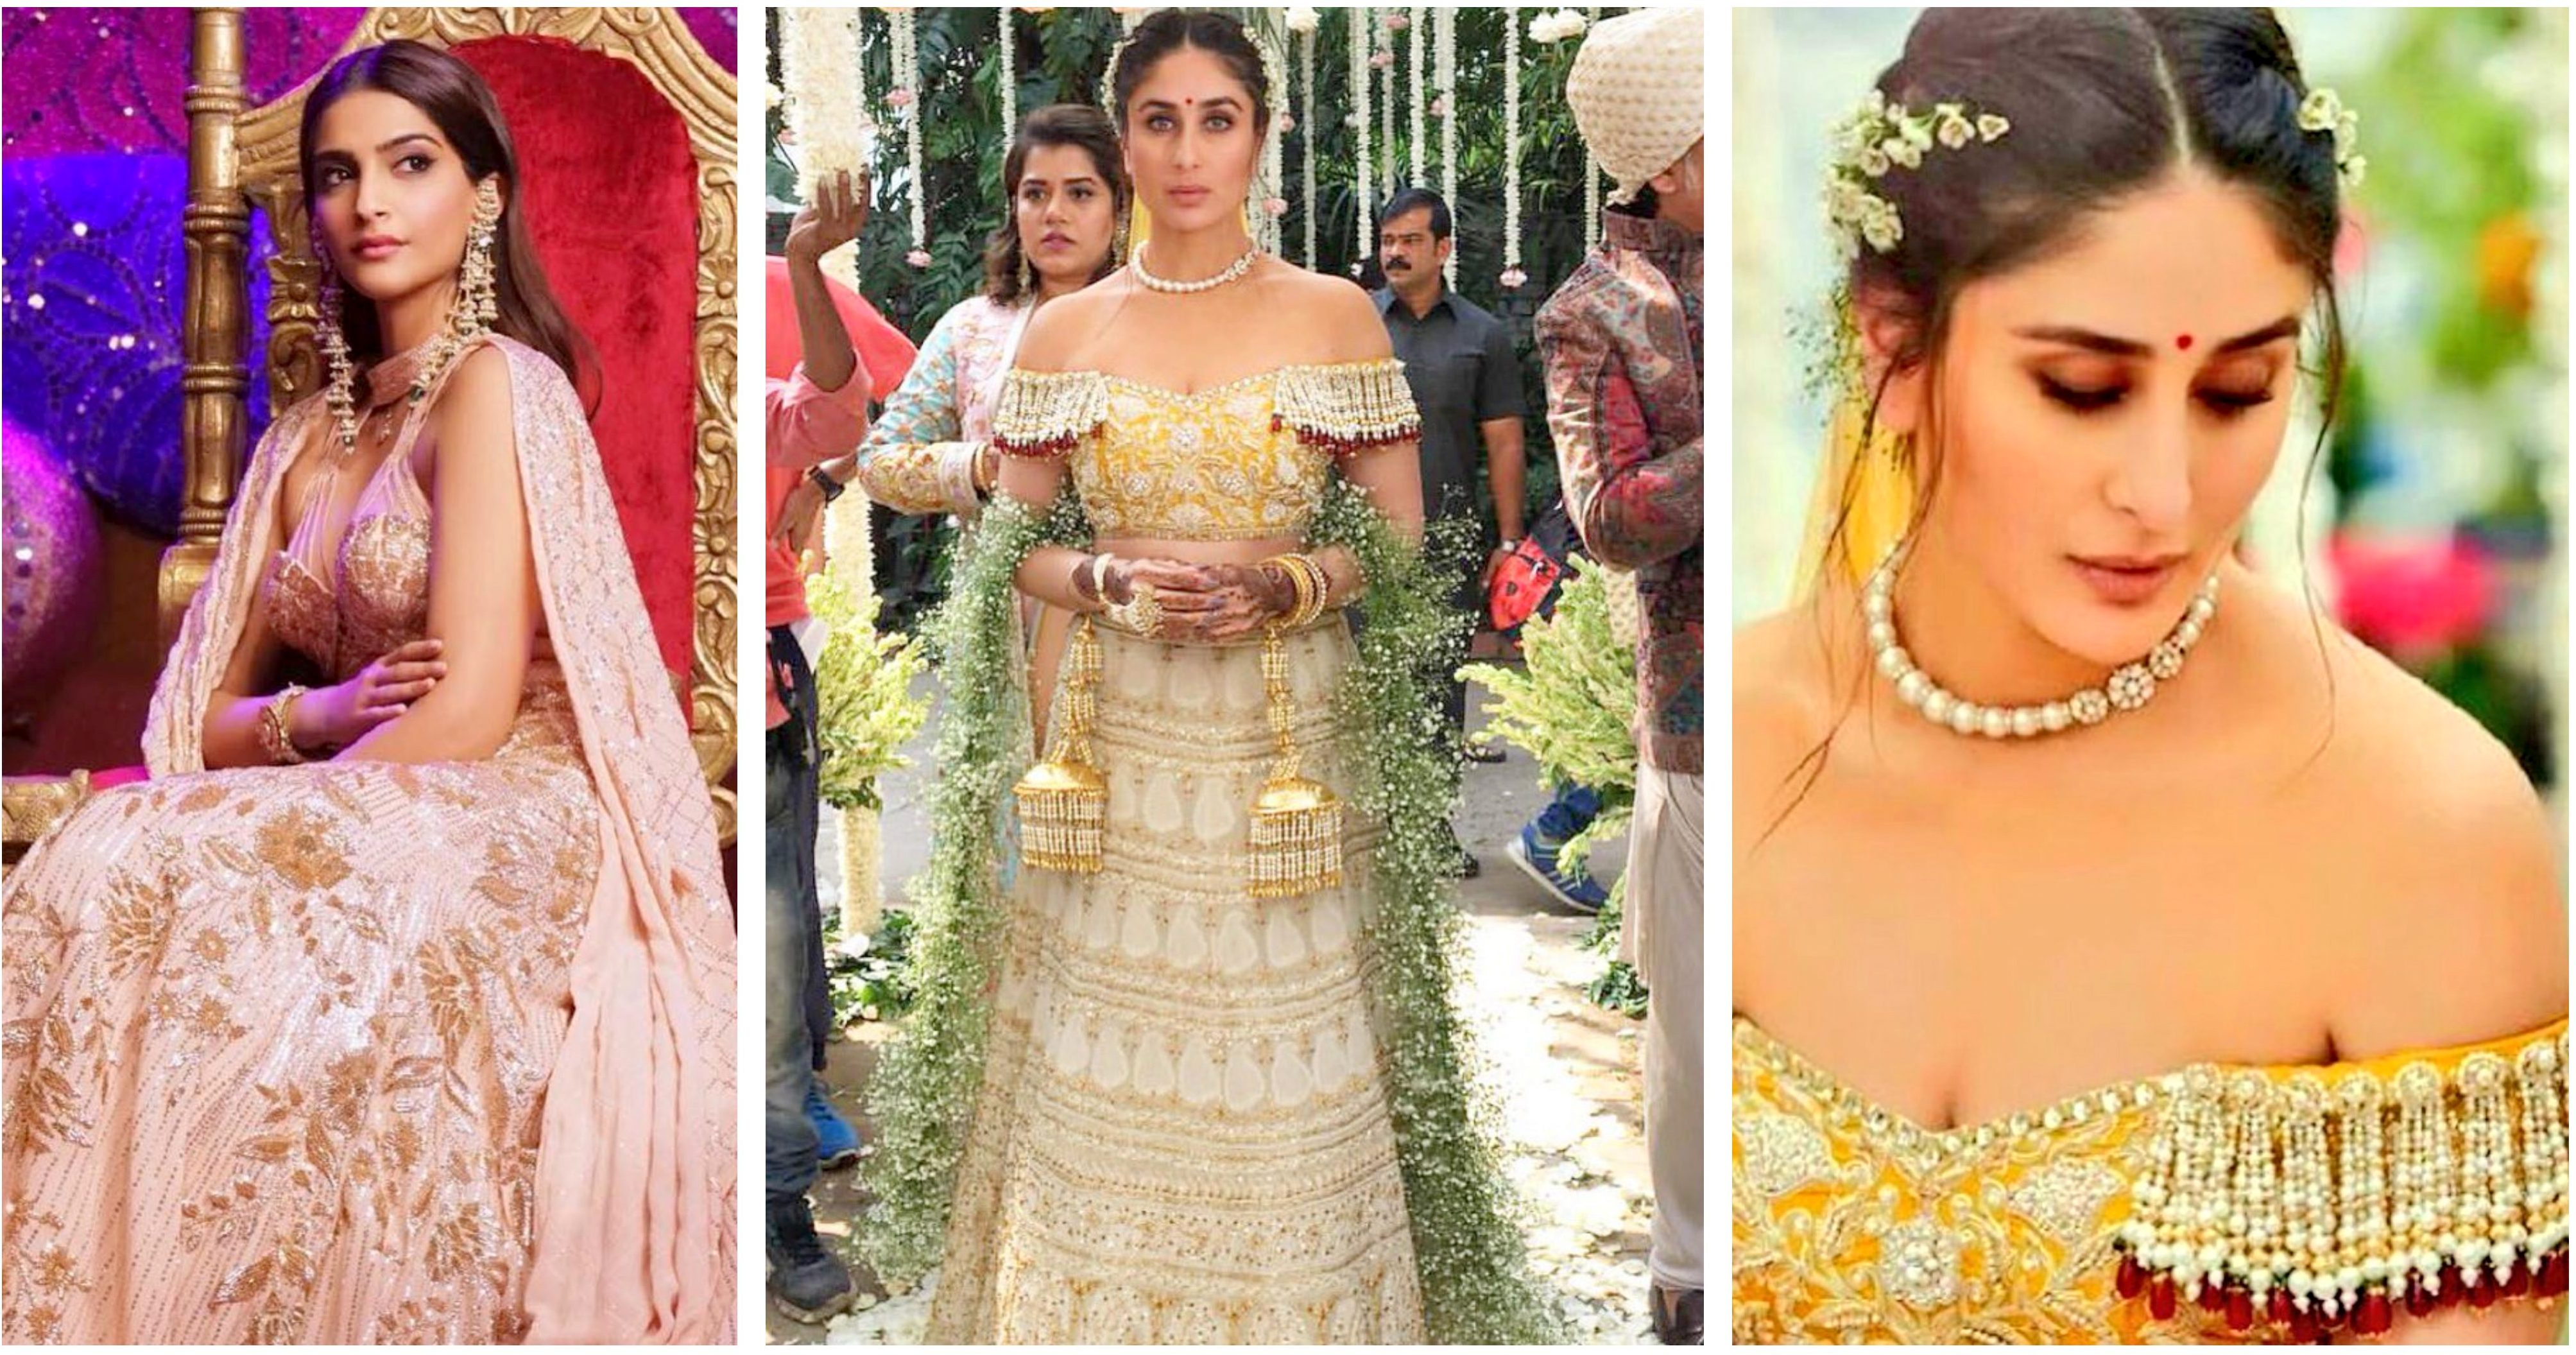 Veera Di Wedding.10 Things From Veere Di Wedding Which Every Bride To Be Will Relate